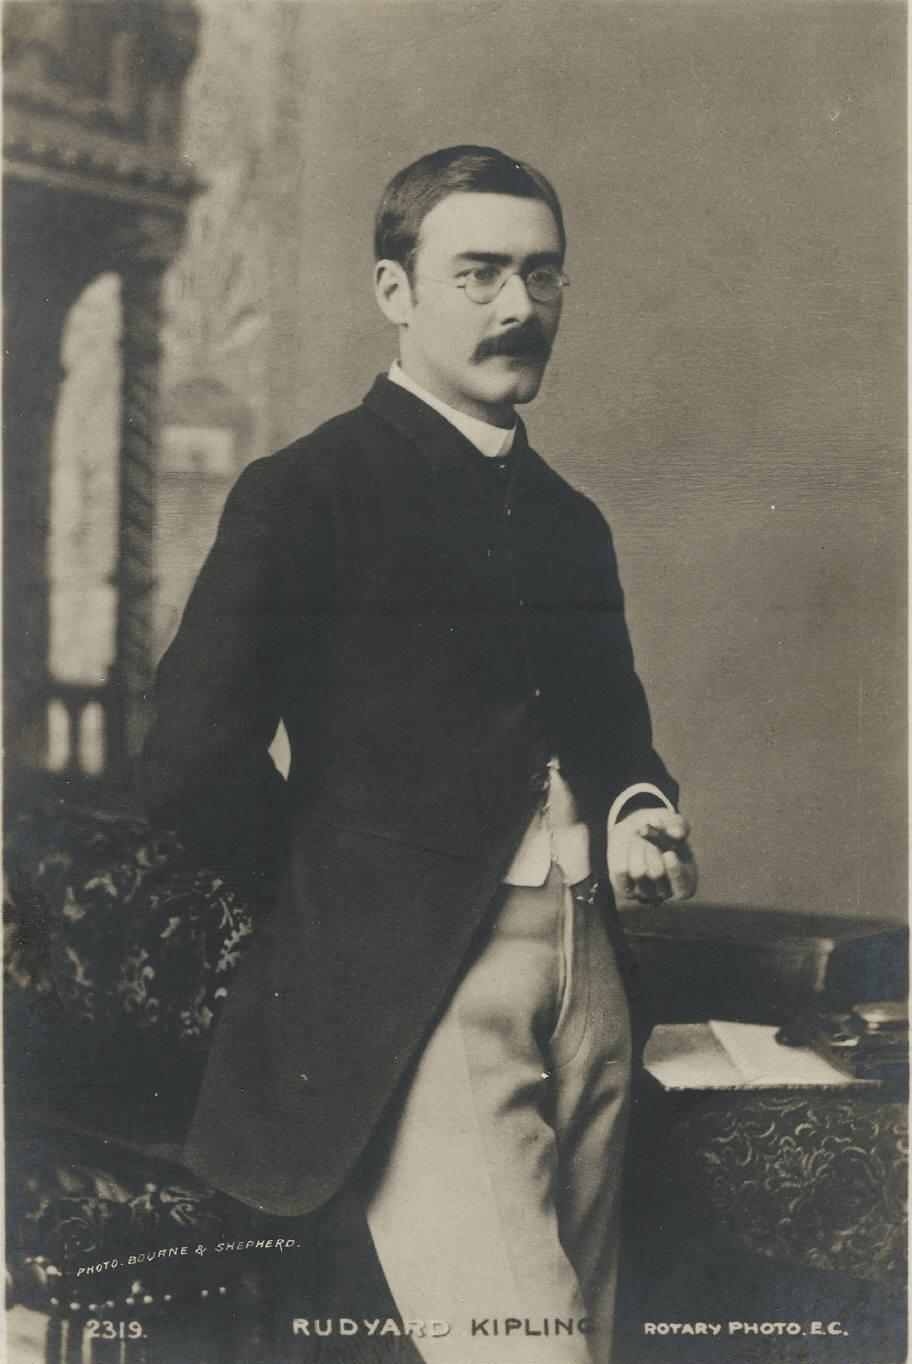 https://i1.wp.com/britainandothers.pbworks.com/f/1302054688/Rudyard_Kipling_three_quarter_length_portrait.jpg